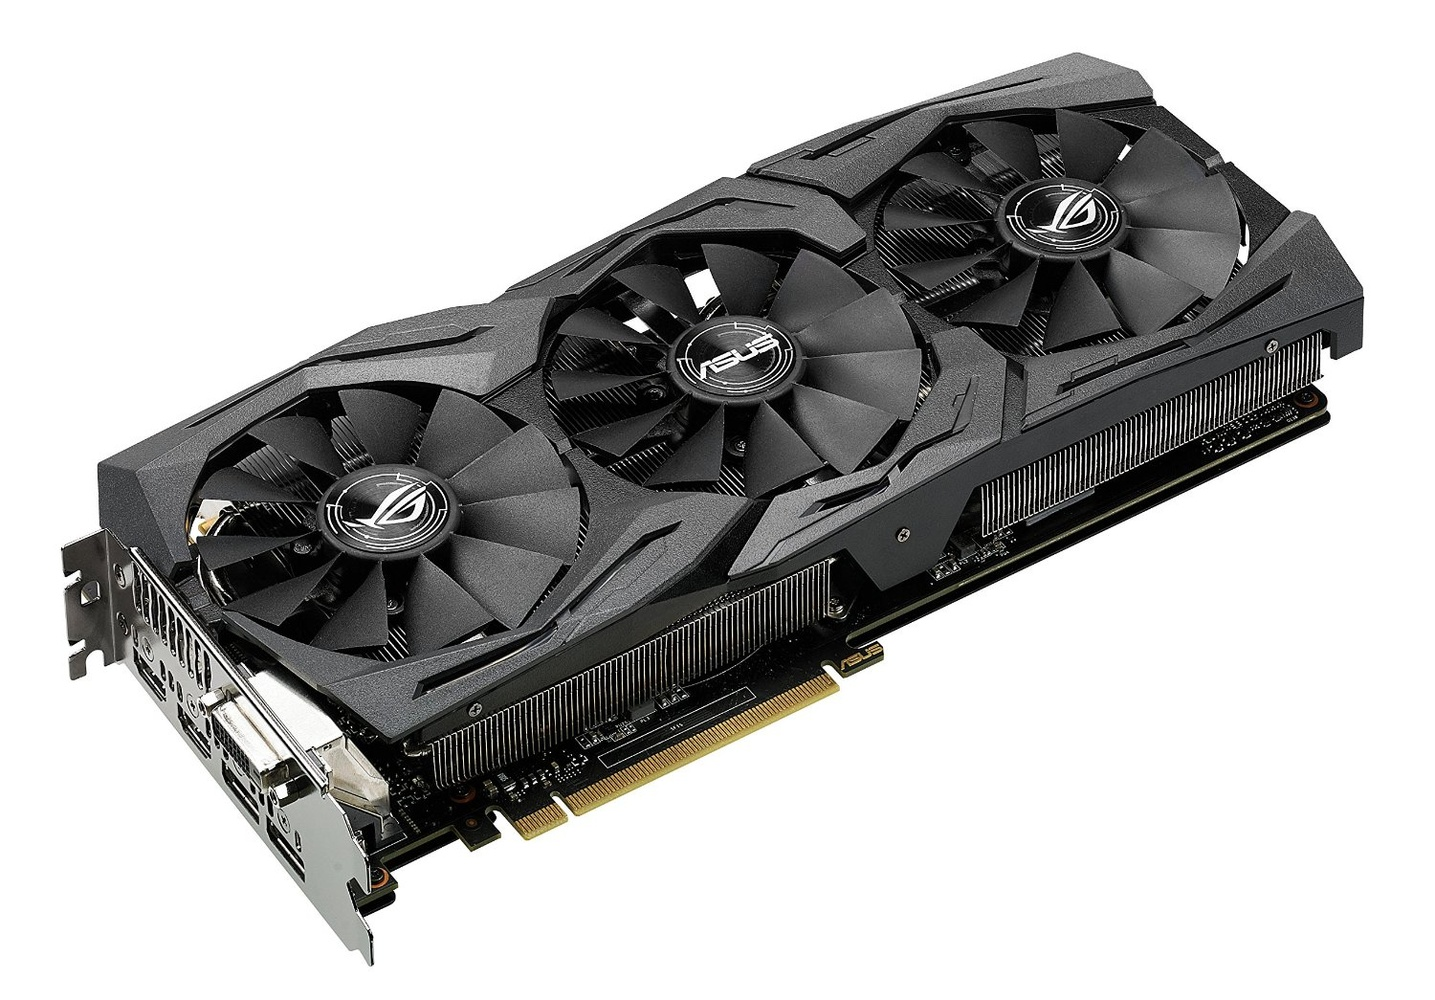 ASUS GeForce GTX 1060 6GB ROG STRIX OC